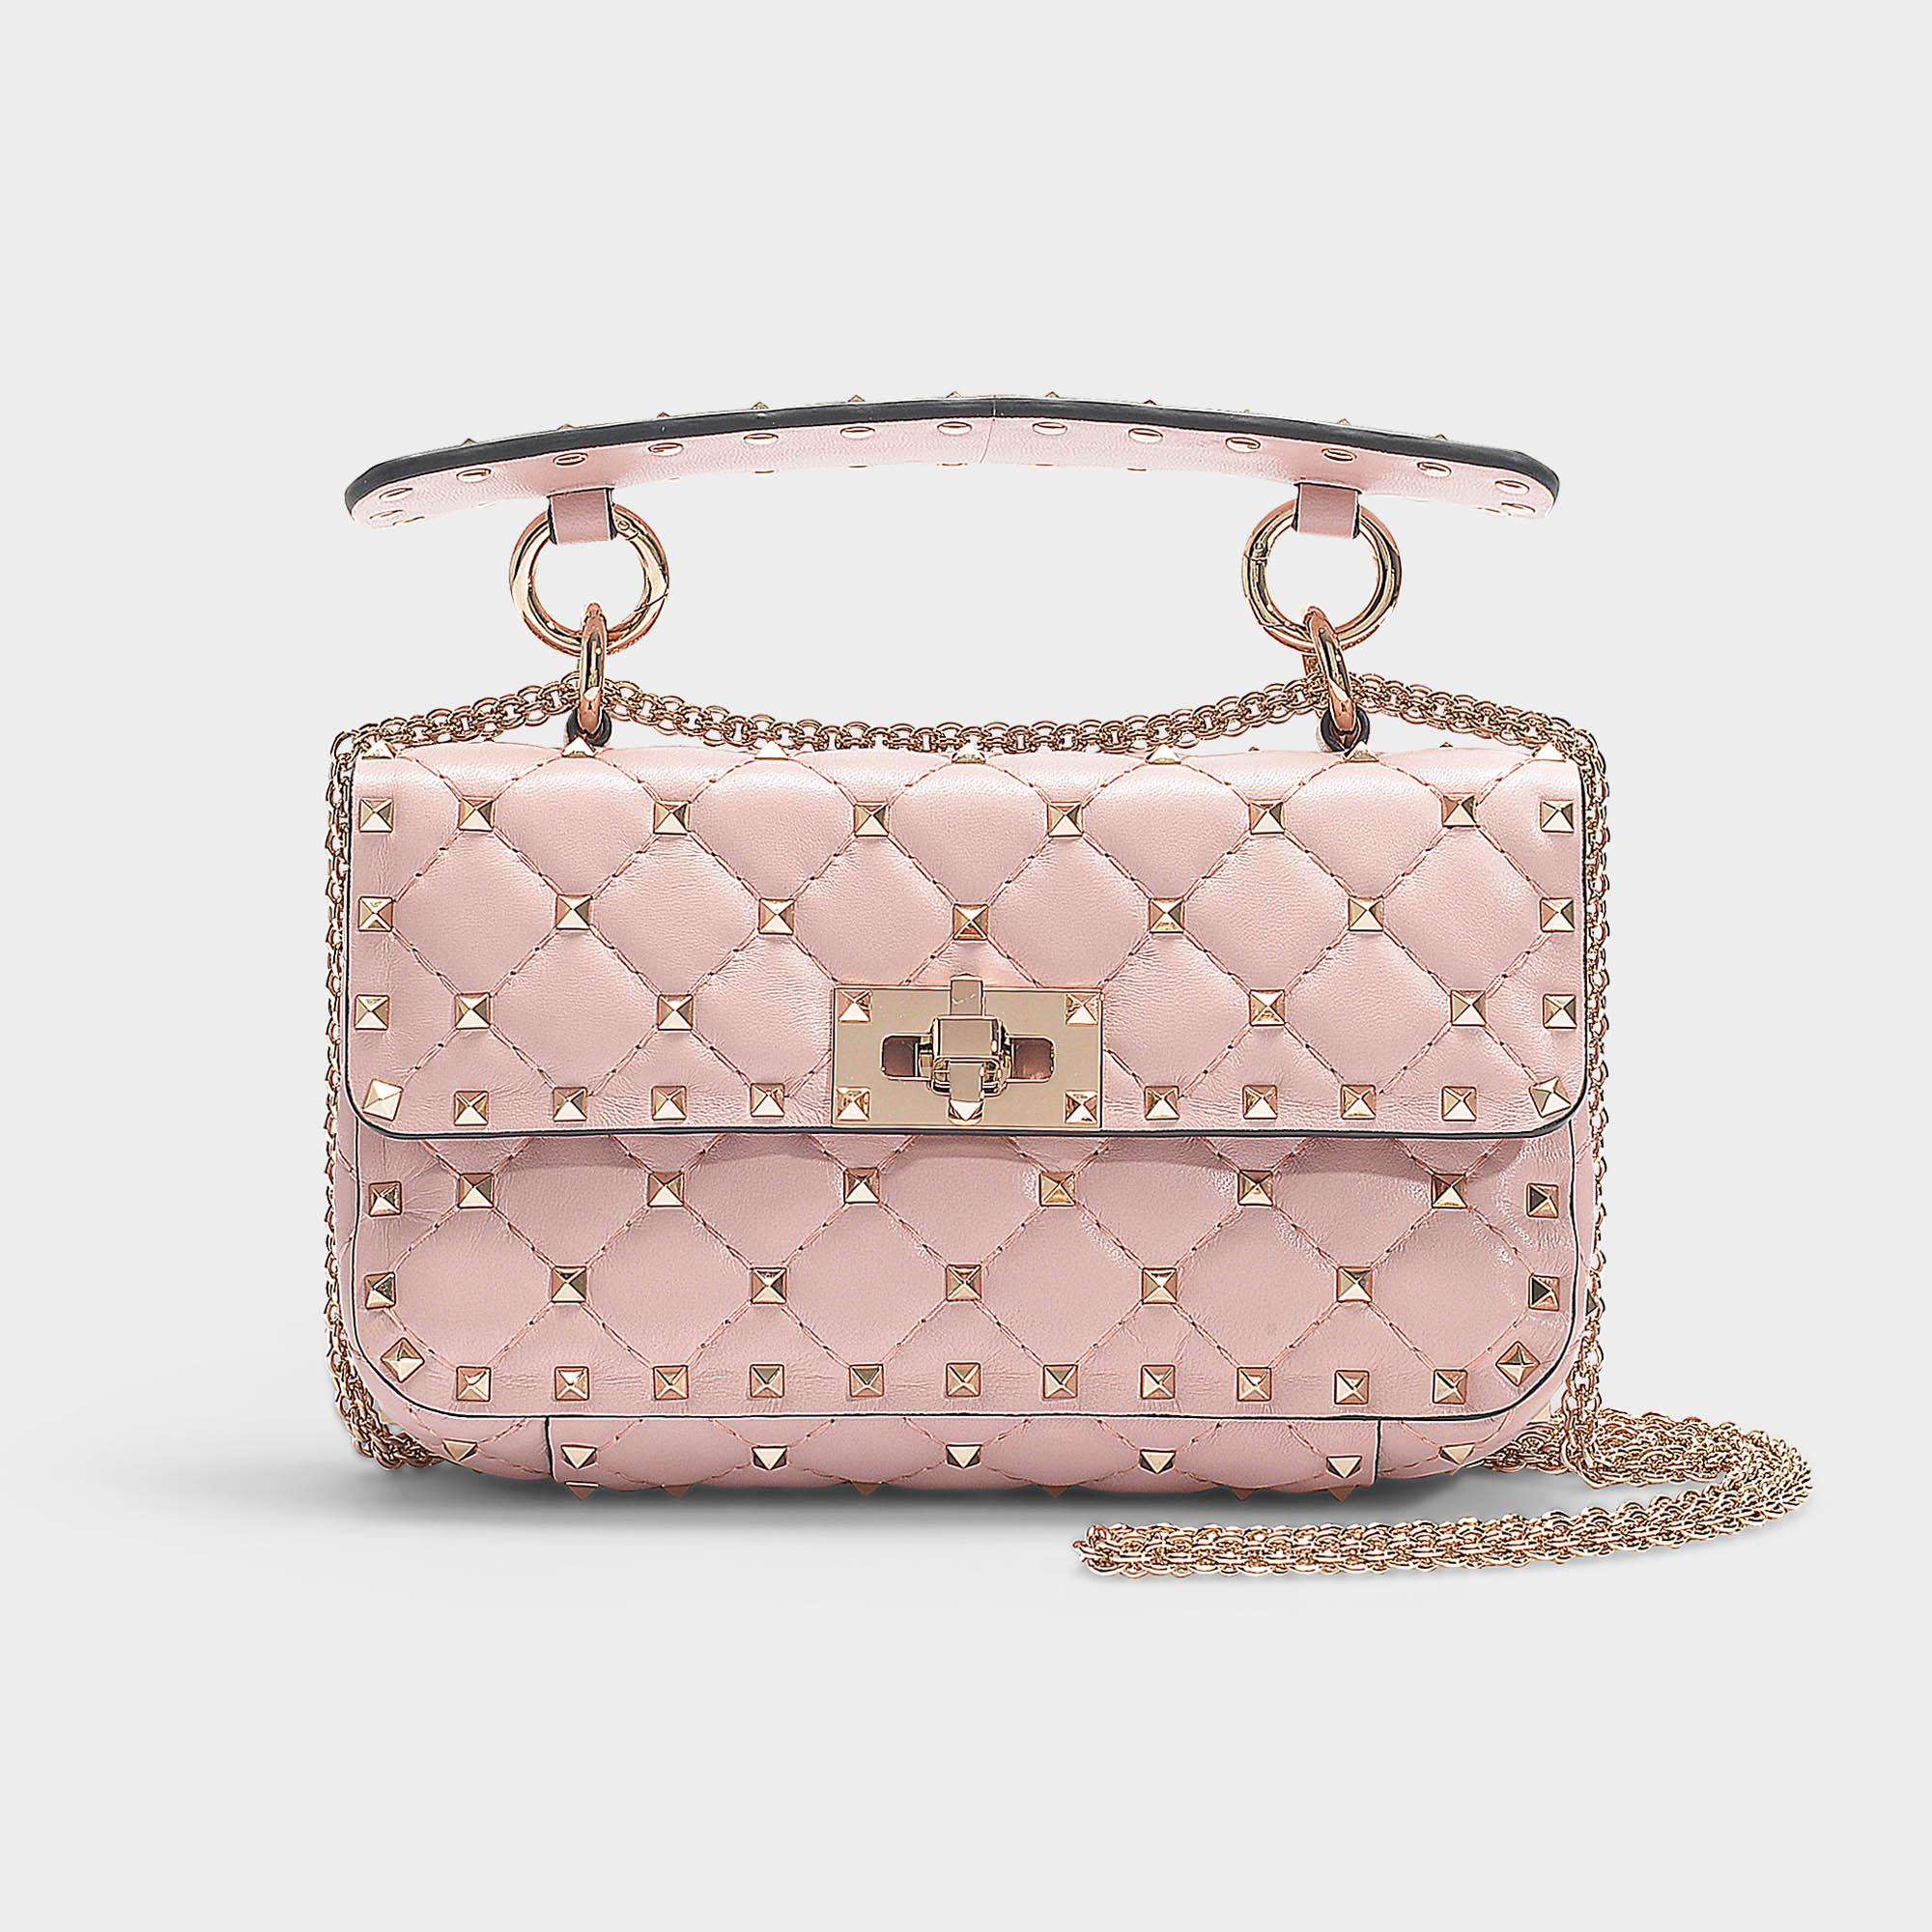 6f5dc64dee Lyst - Valentino Rockstud Spike Small Shoulder Bag In Water Rose ...